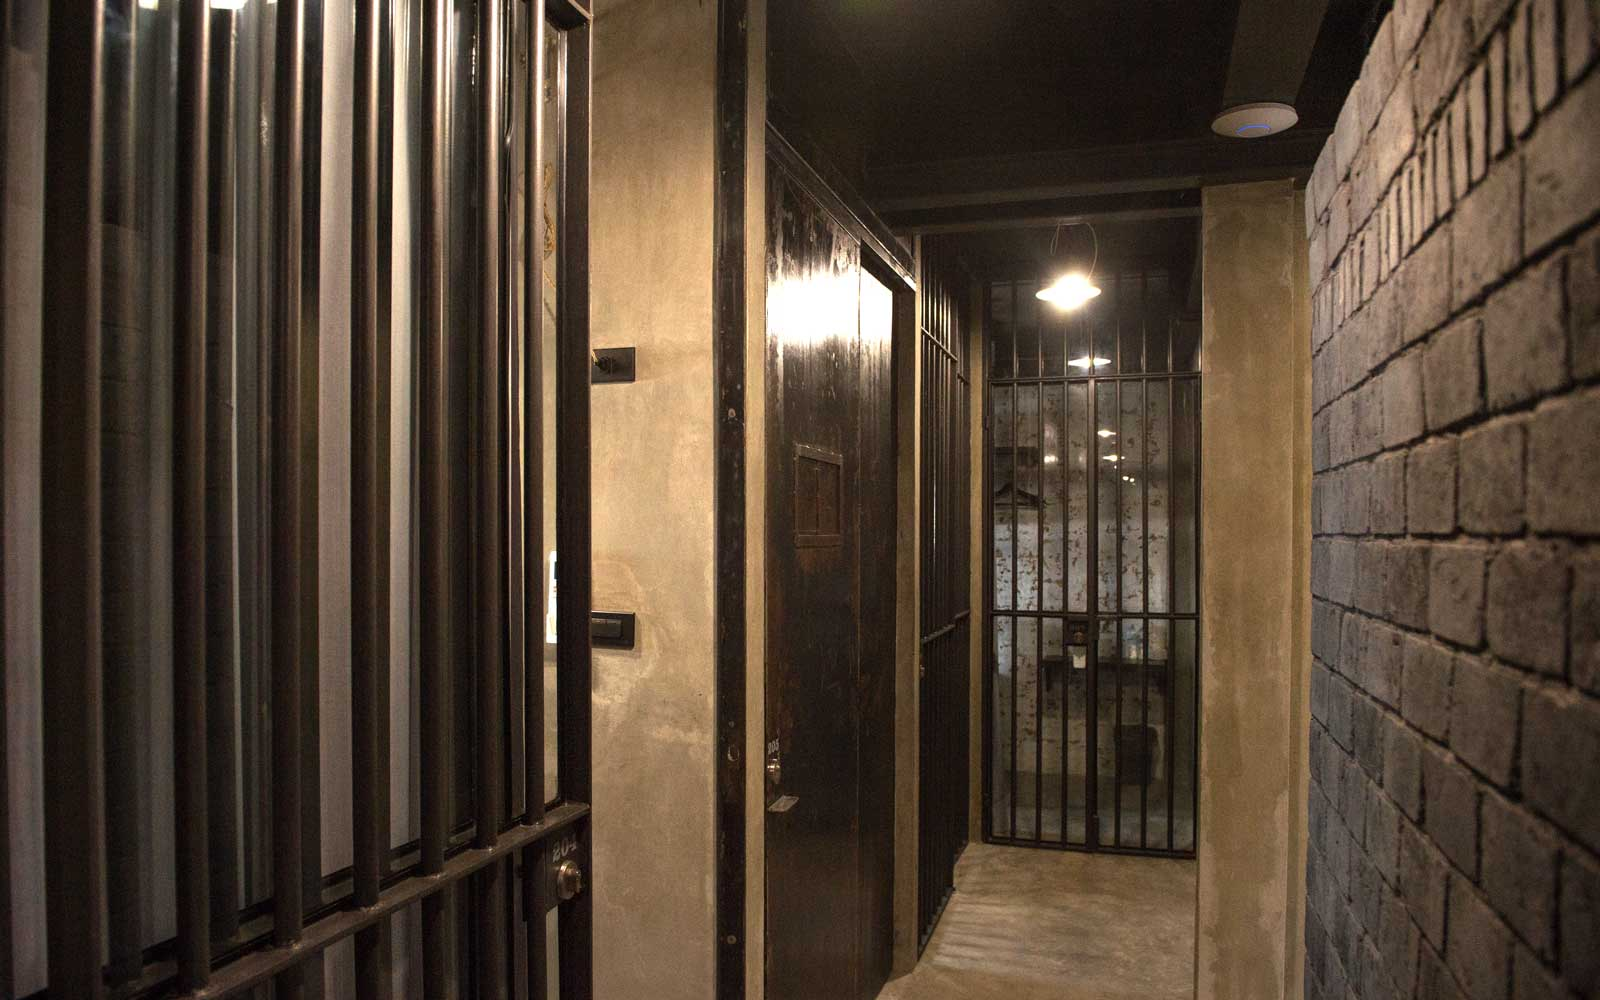 Sook Station Is a Prison-themed Hotel in Bangkok